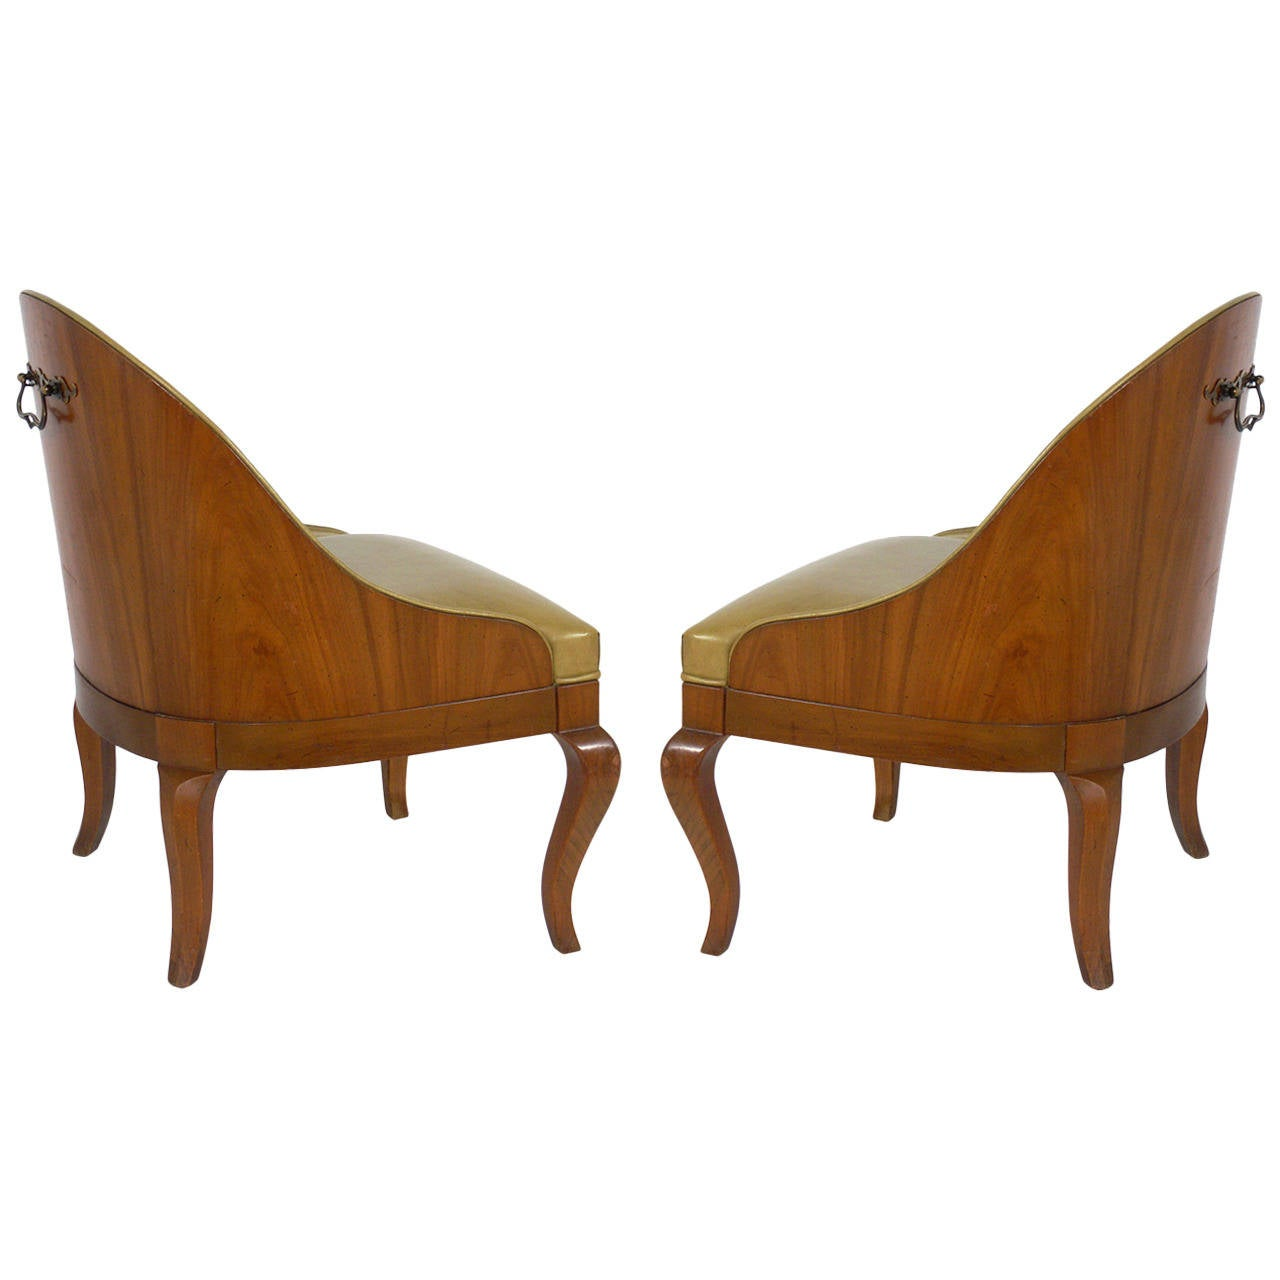 Pair of Curvaceous Walnut Slipper Chairs with Brass Handles